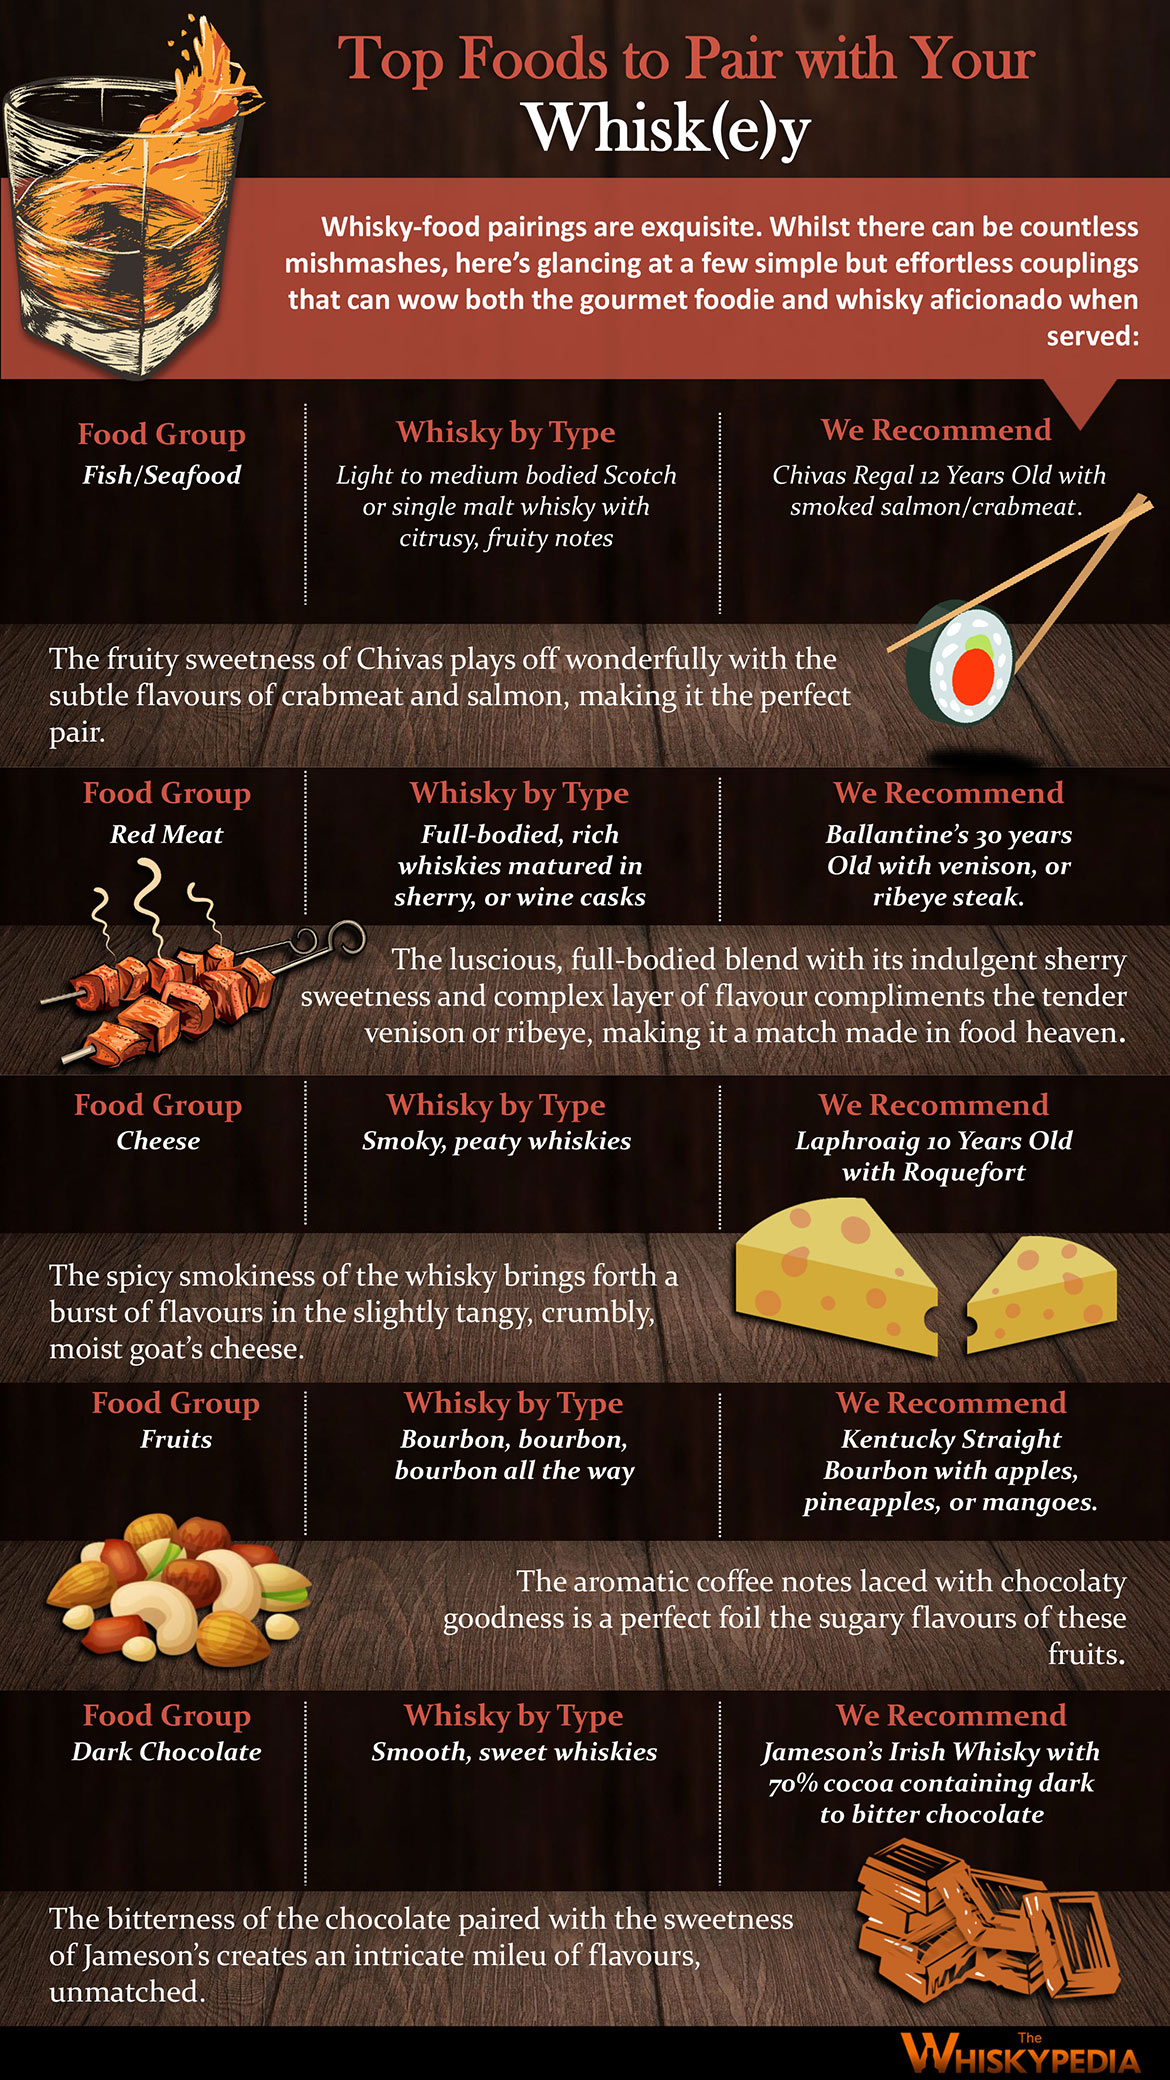 Top Foods to Pair with Whisky